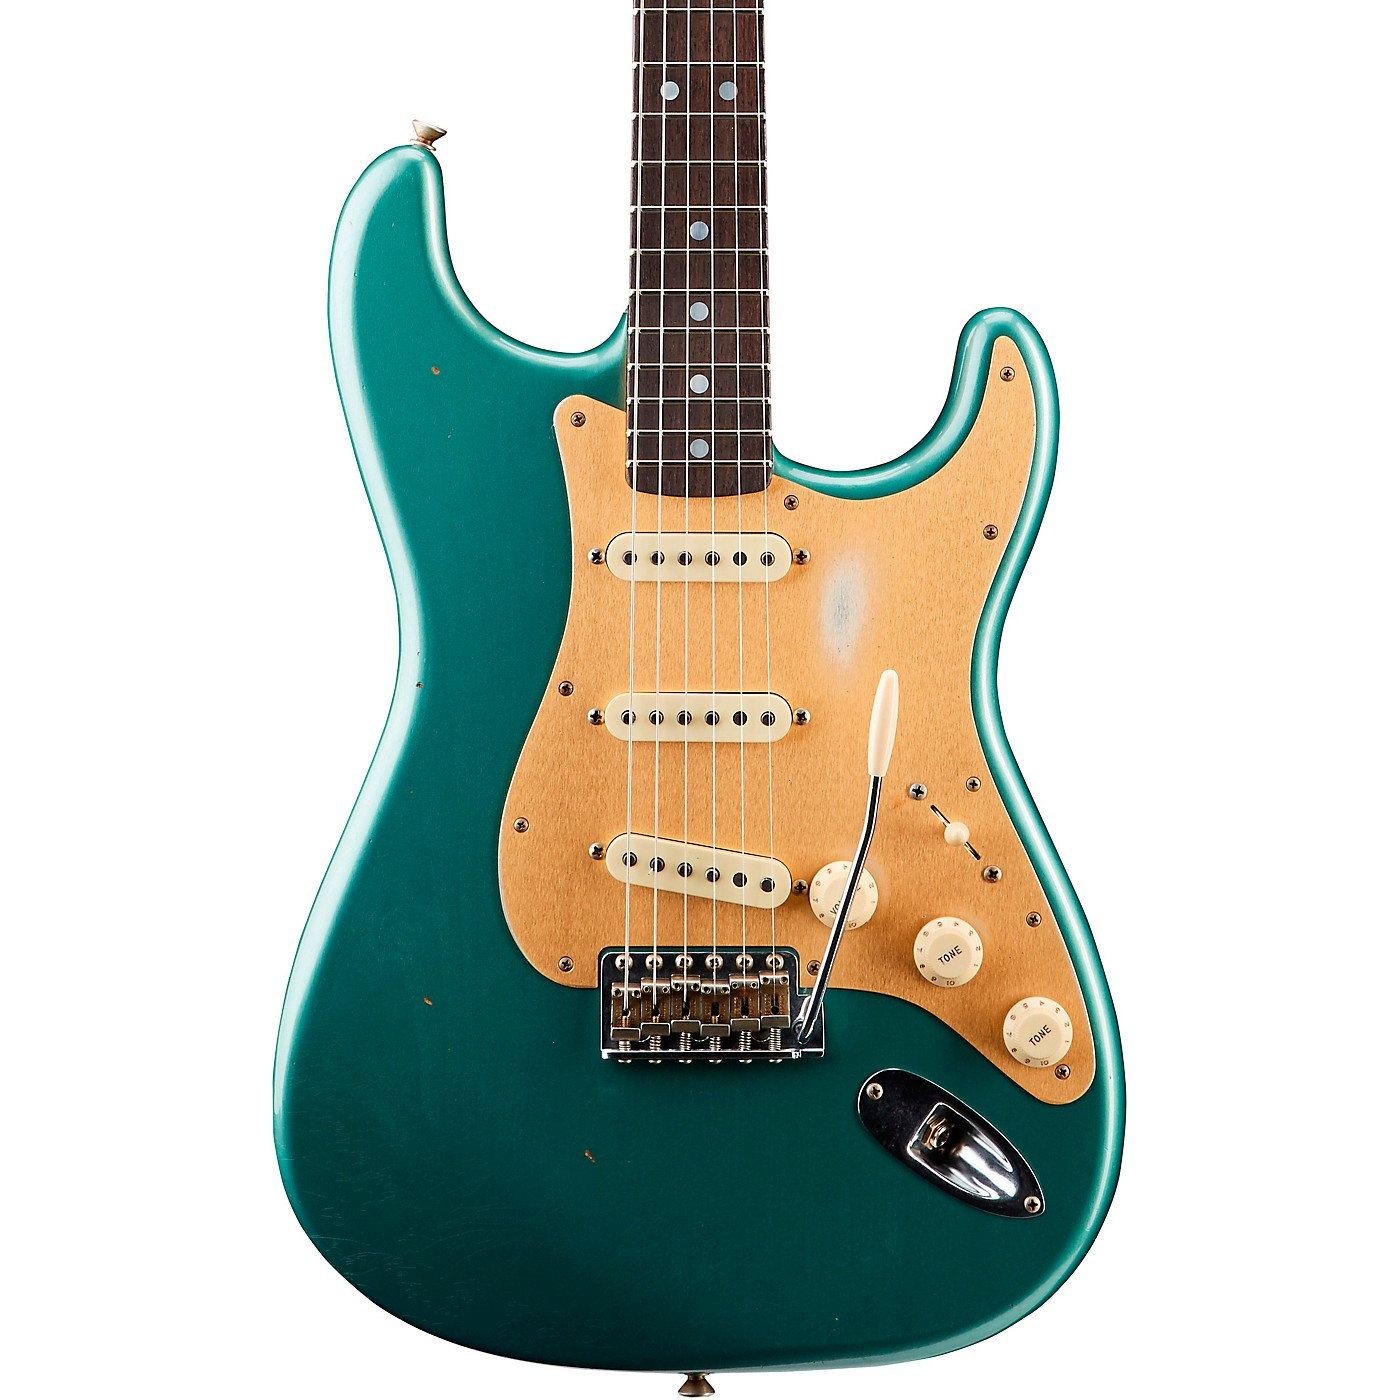 Fender Custom Shop Big Head Stratocaster Journeyman Rosewood Fingerboard Limited Edition Electric Guitar thumbnail